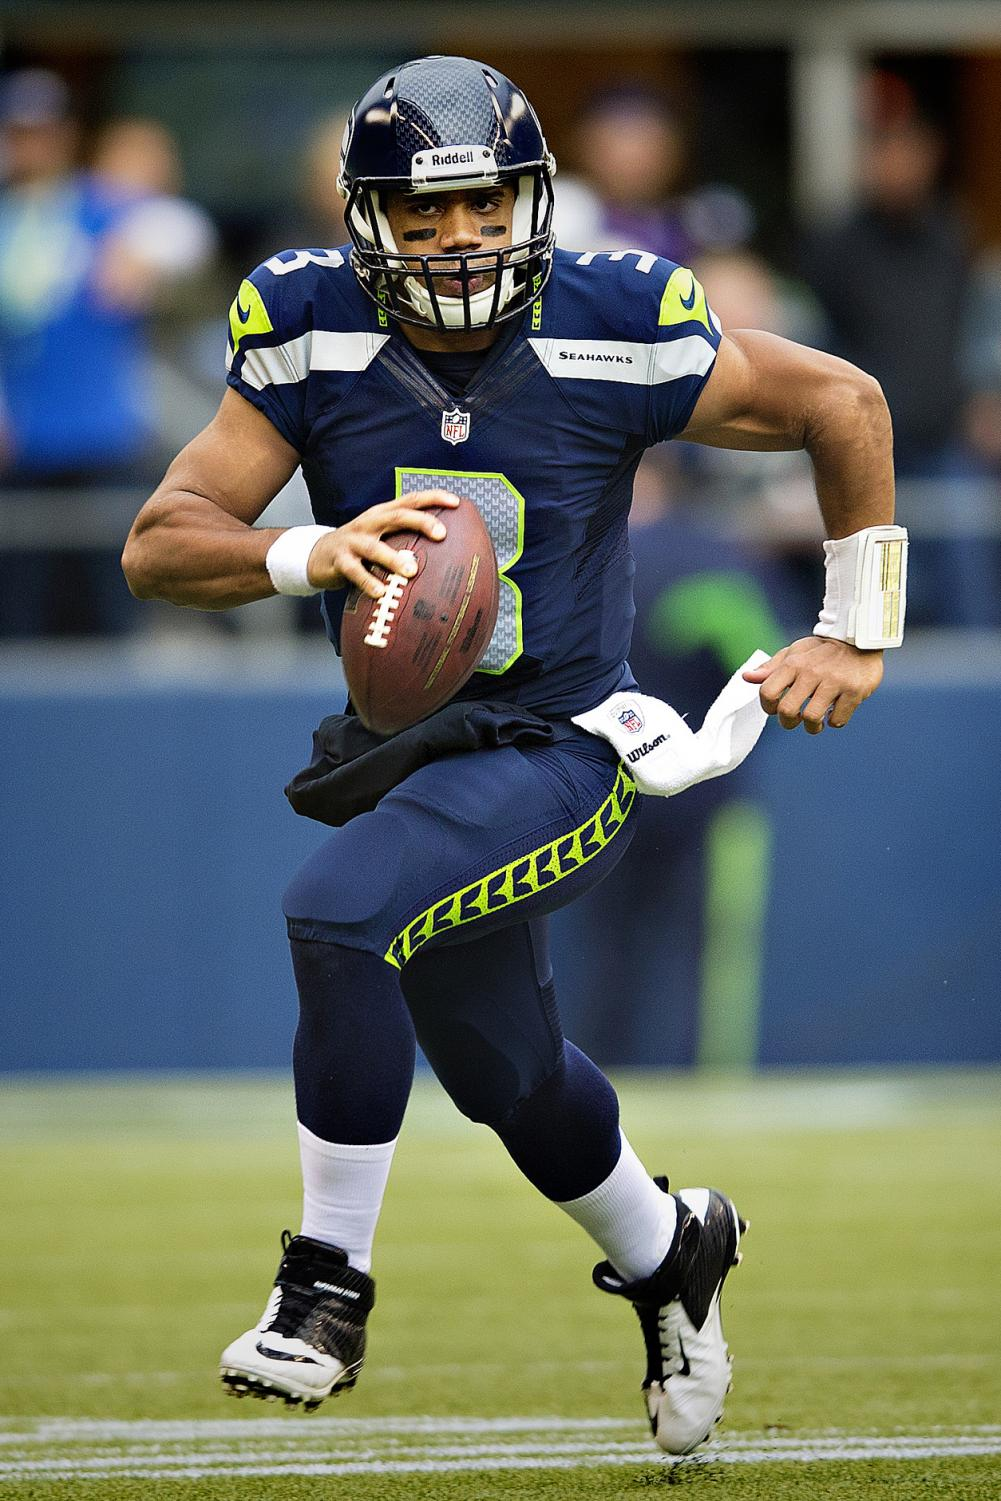 Running down the field with the ball, Russell Wilson looks for a teammate in the endzone to pass the ball to. Wilson is one of the many athletes in the past to chose football over other sports, but with increasing knowledge on concussions, could we begin to see a new trend in sports?